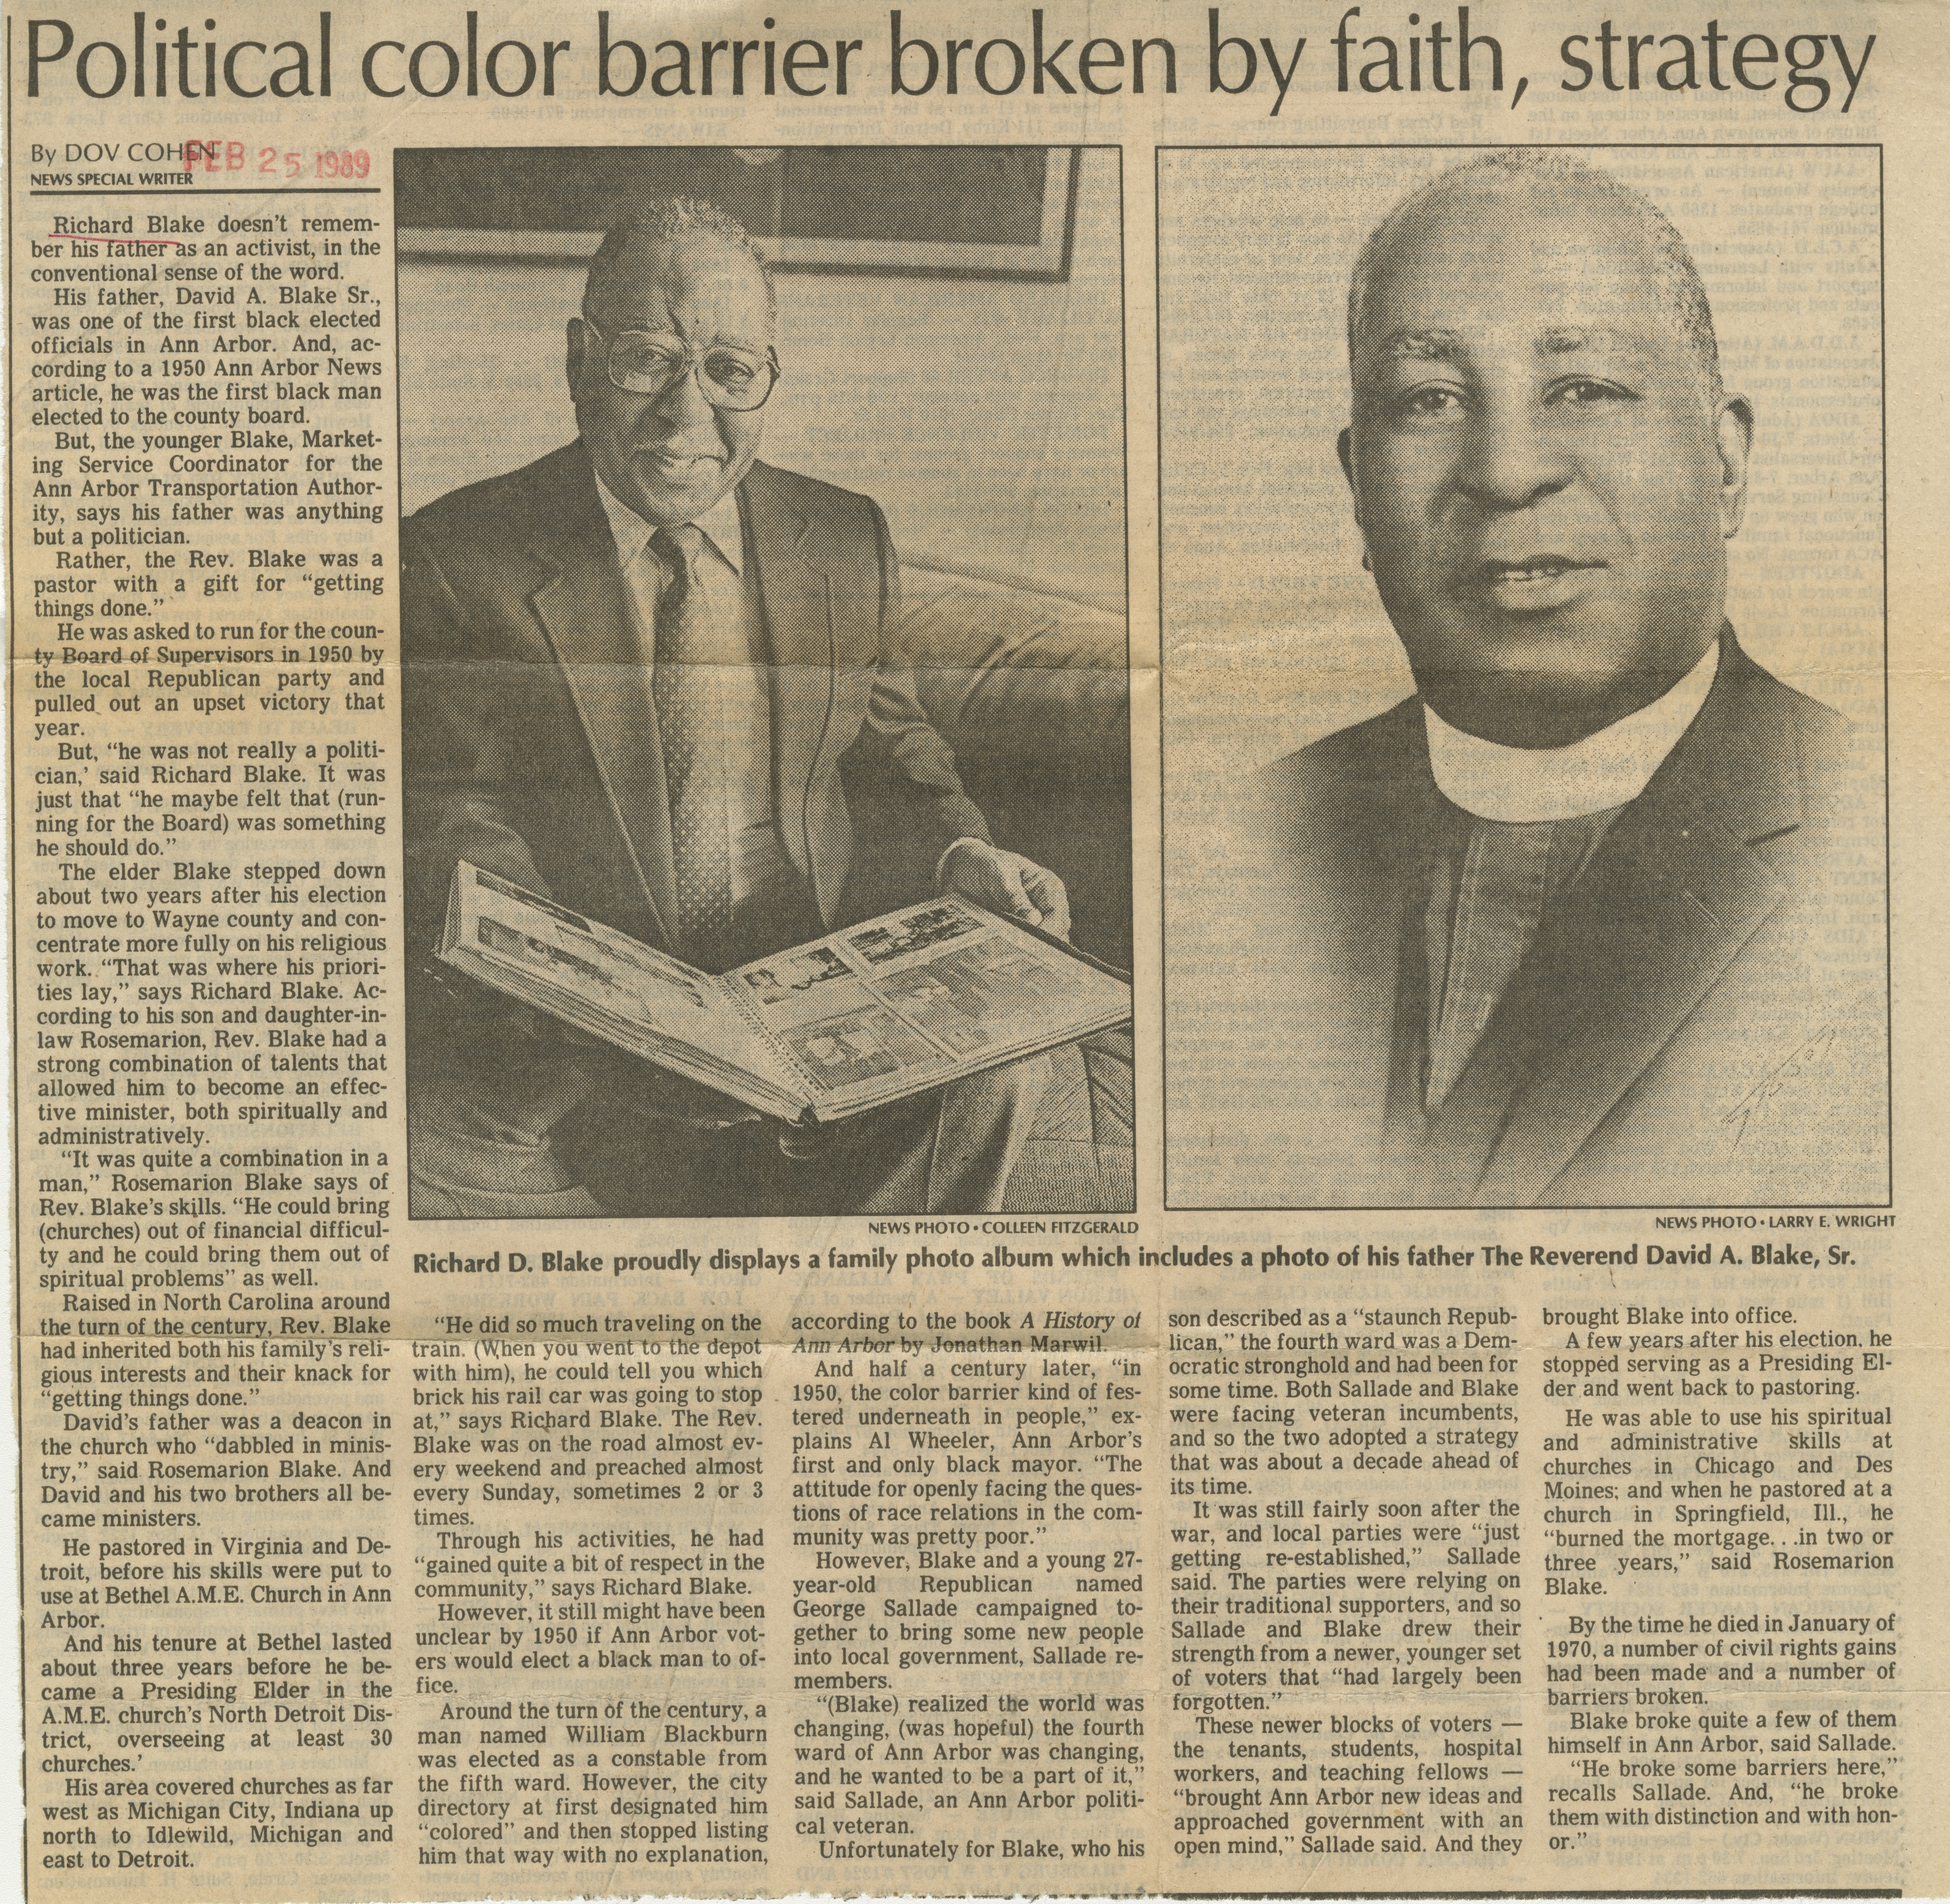 Political color barrier broken by faith, strategy image